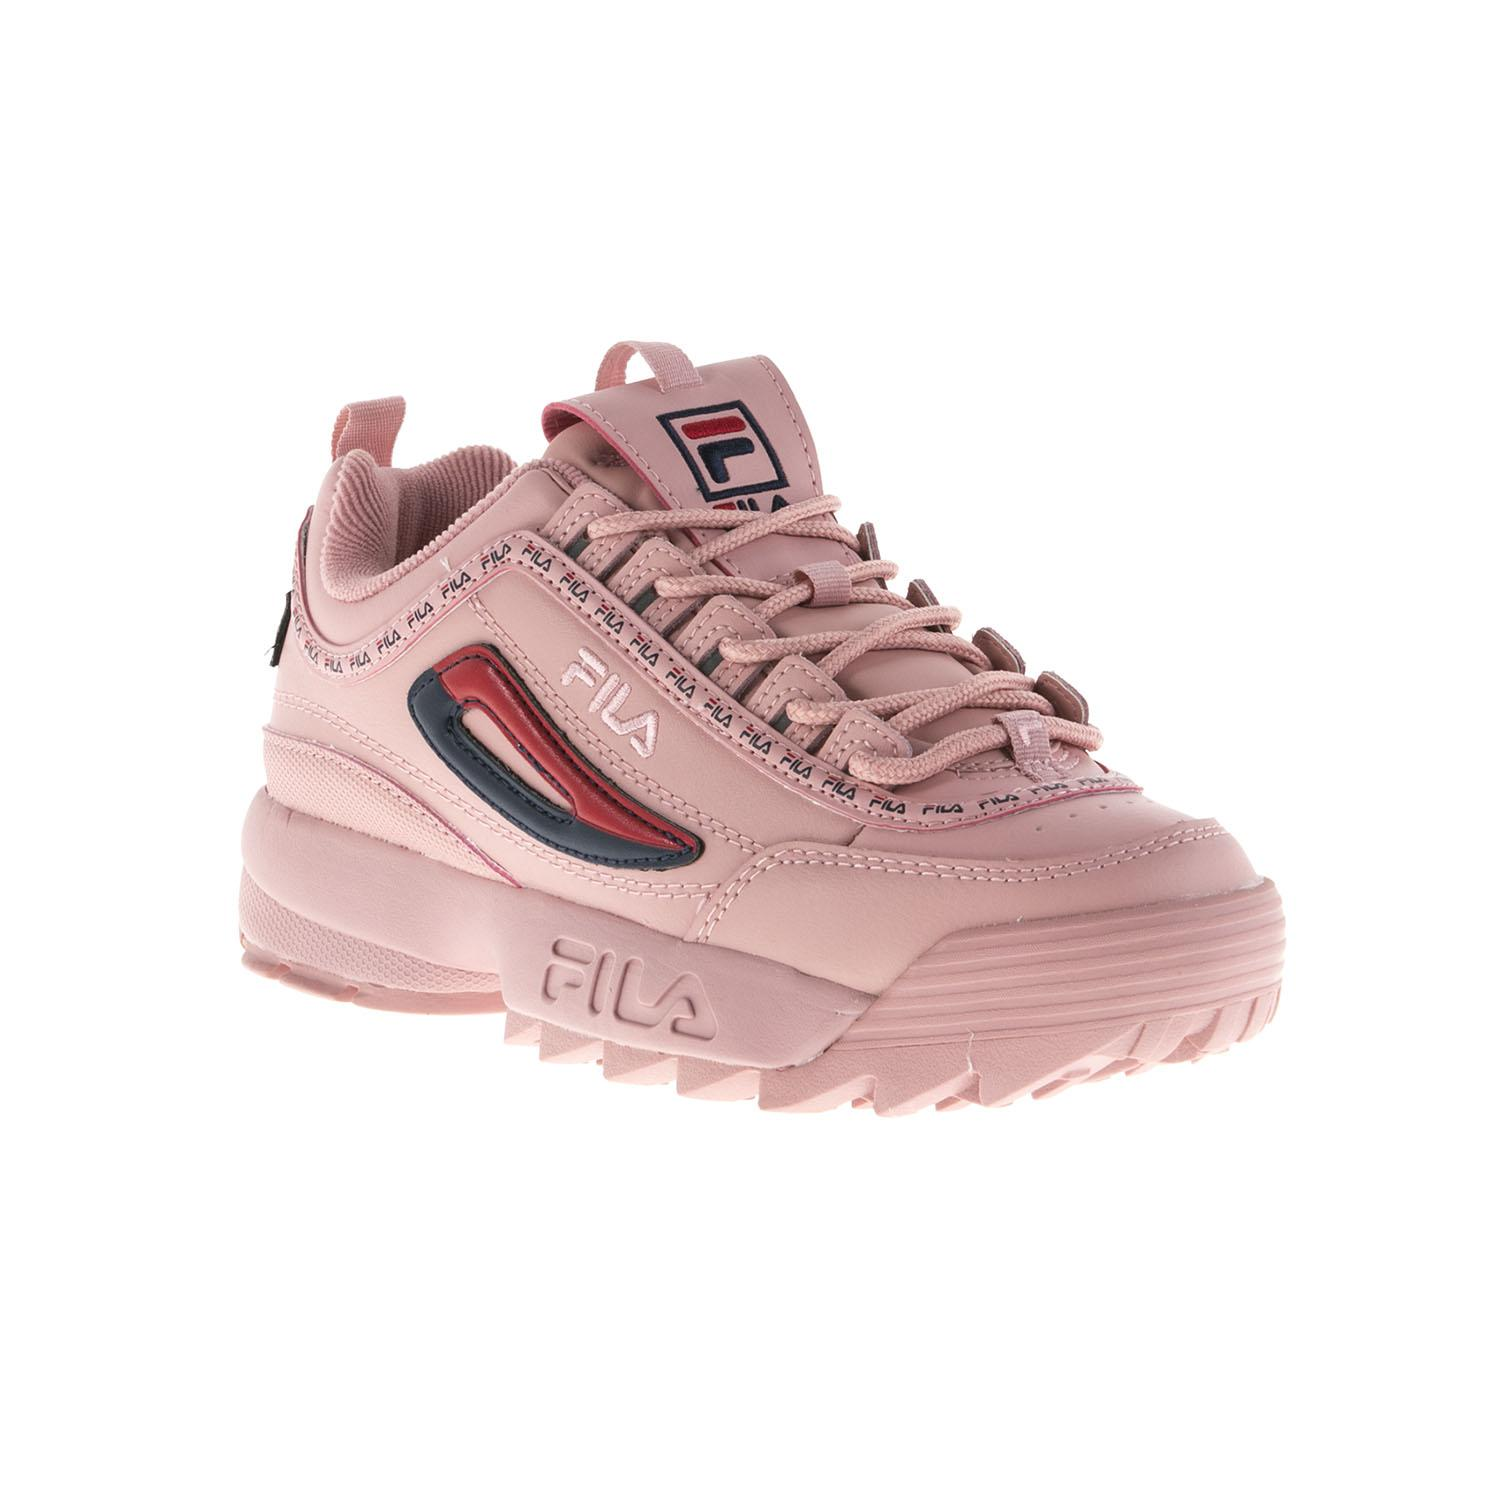 Fila Pink Taped Logo Disruptor 2 Premium Trainers in Pink - Save 1 ... 88ebef06f